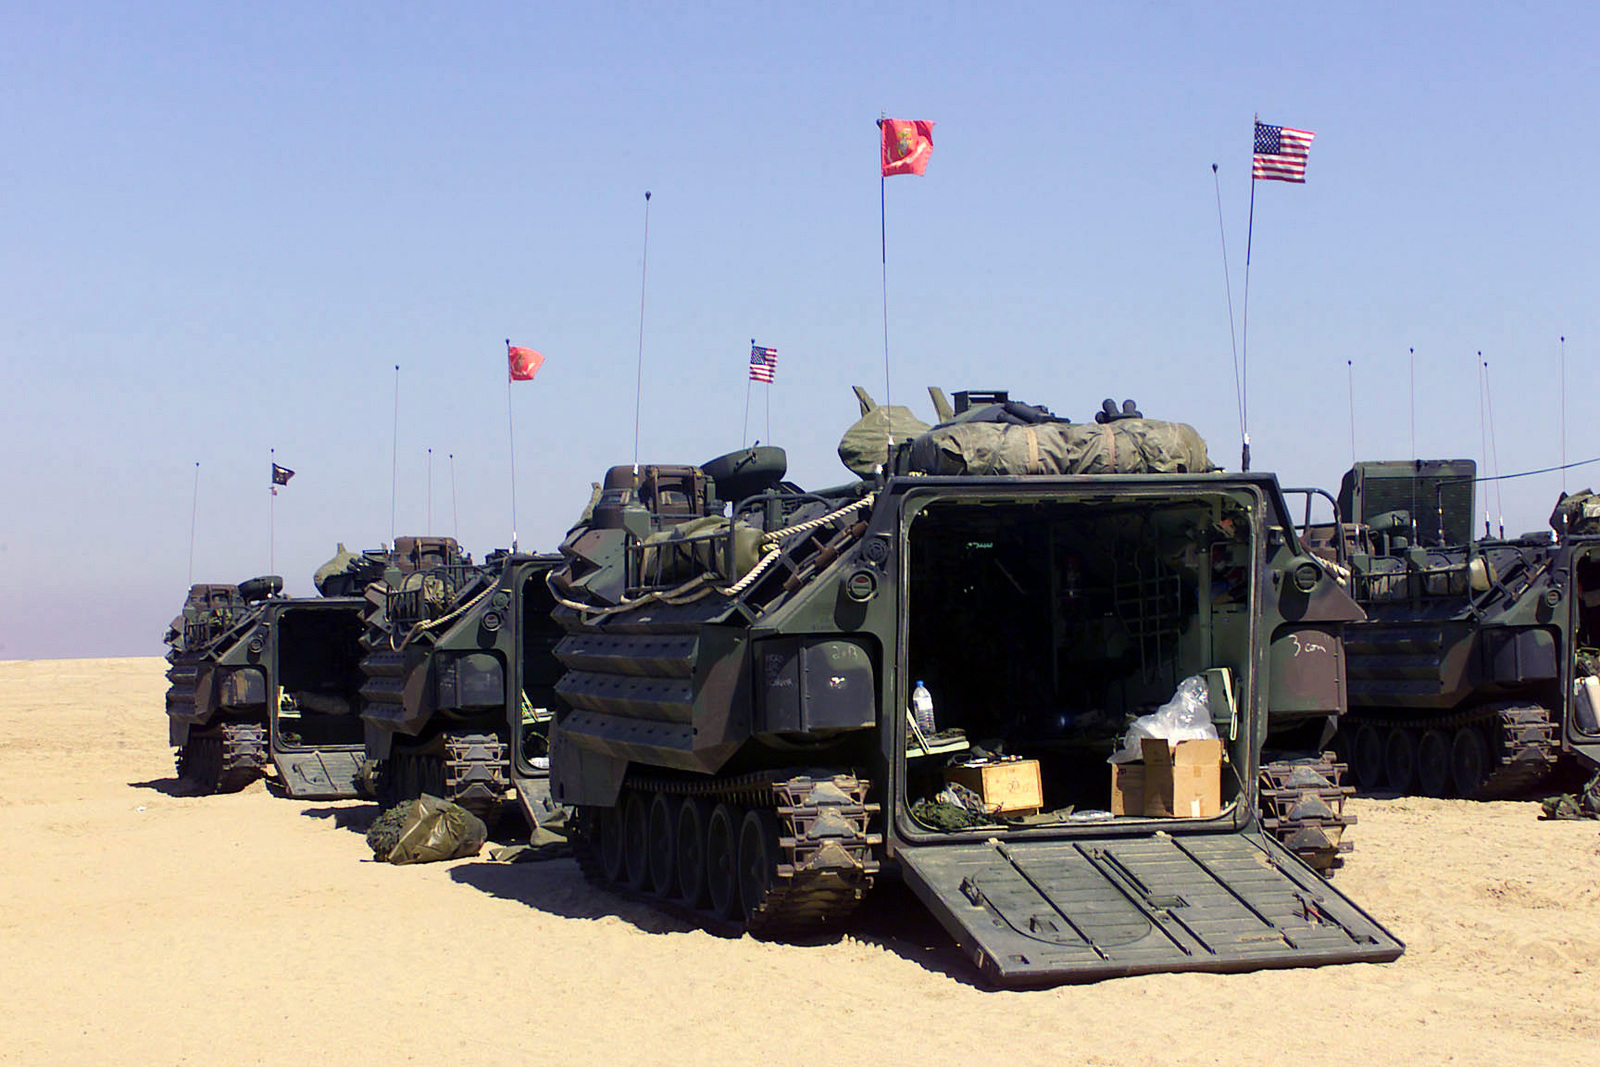 Us Marine Corps Usmc Amphibious Assault Vehicles Aav7a1 Assigned To The 3rd Amphibious Assault Battalion Aab 1st Marine Division At Camp Coyote Kuwait During Operation Enduring Freedom U S National Archives Public